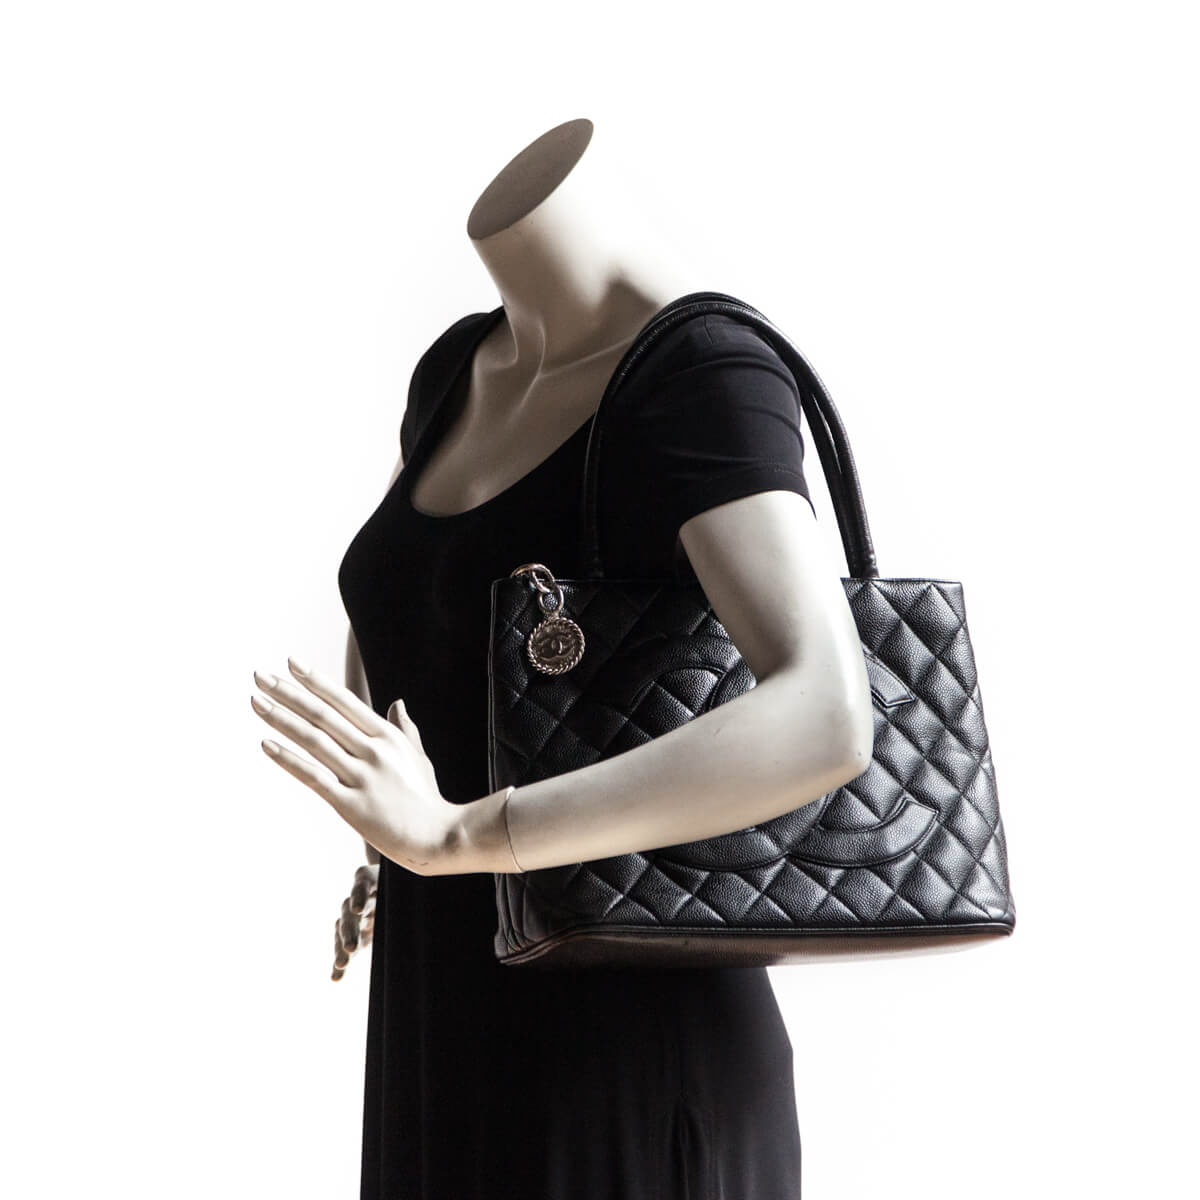 ... Chanel Black Caviar Medallion Tote - LOVE that BAG - Preowned Authentic  Designer Handbags 9e1ceb22e8314